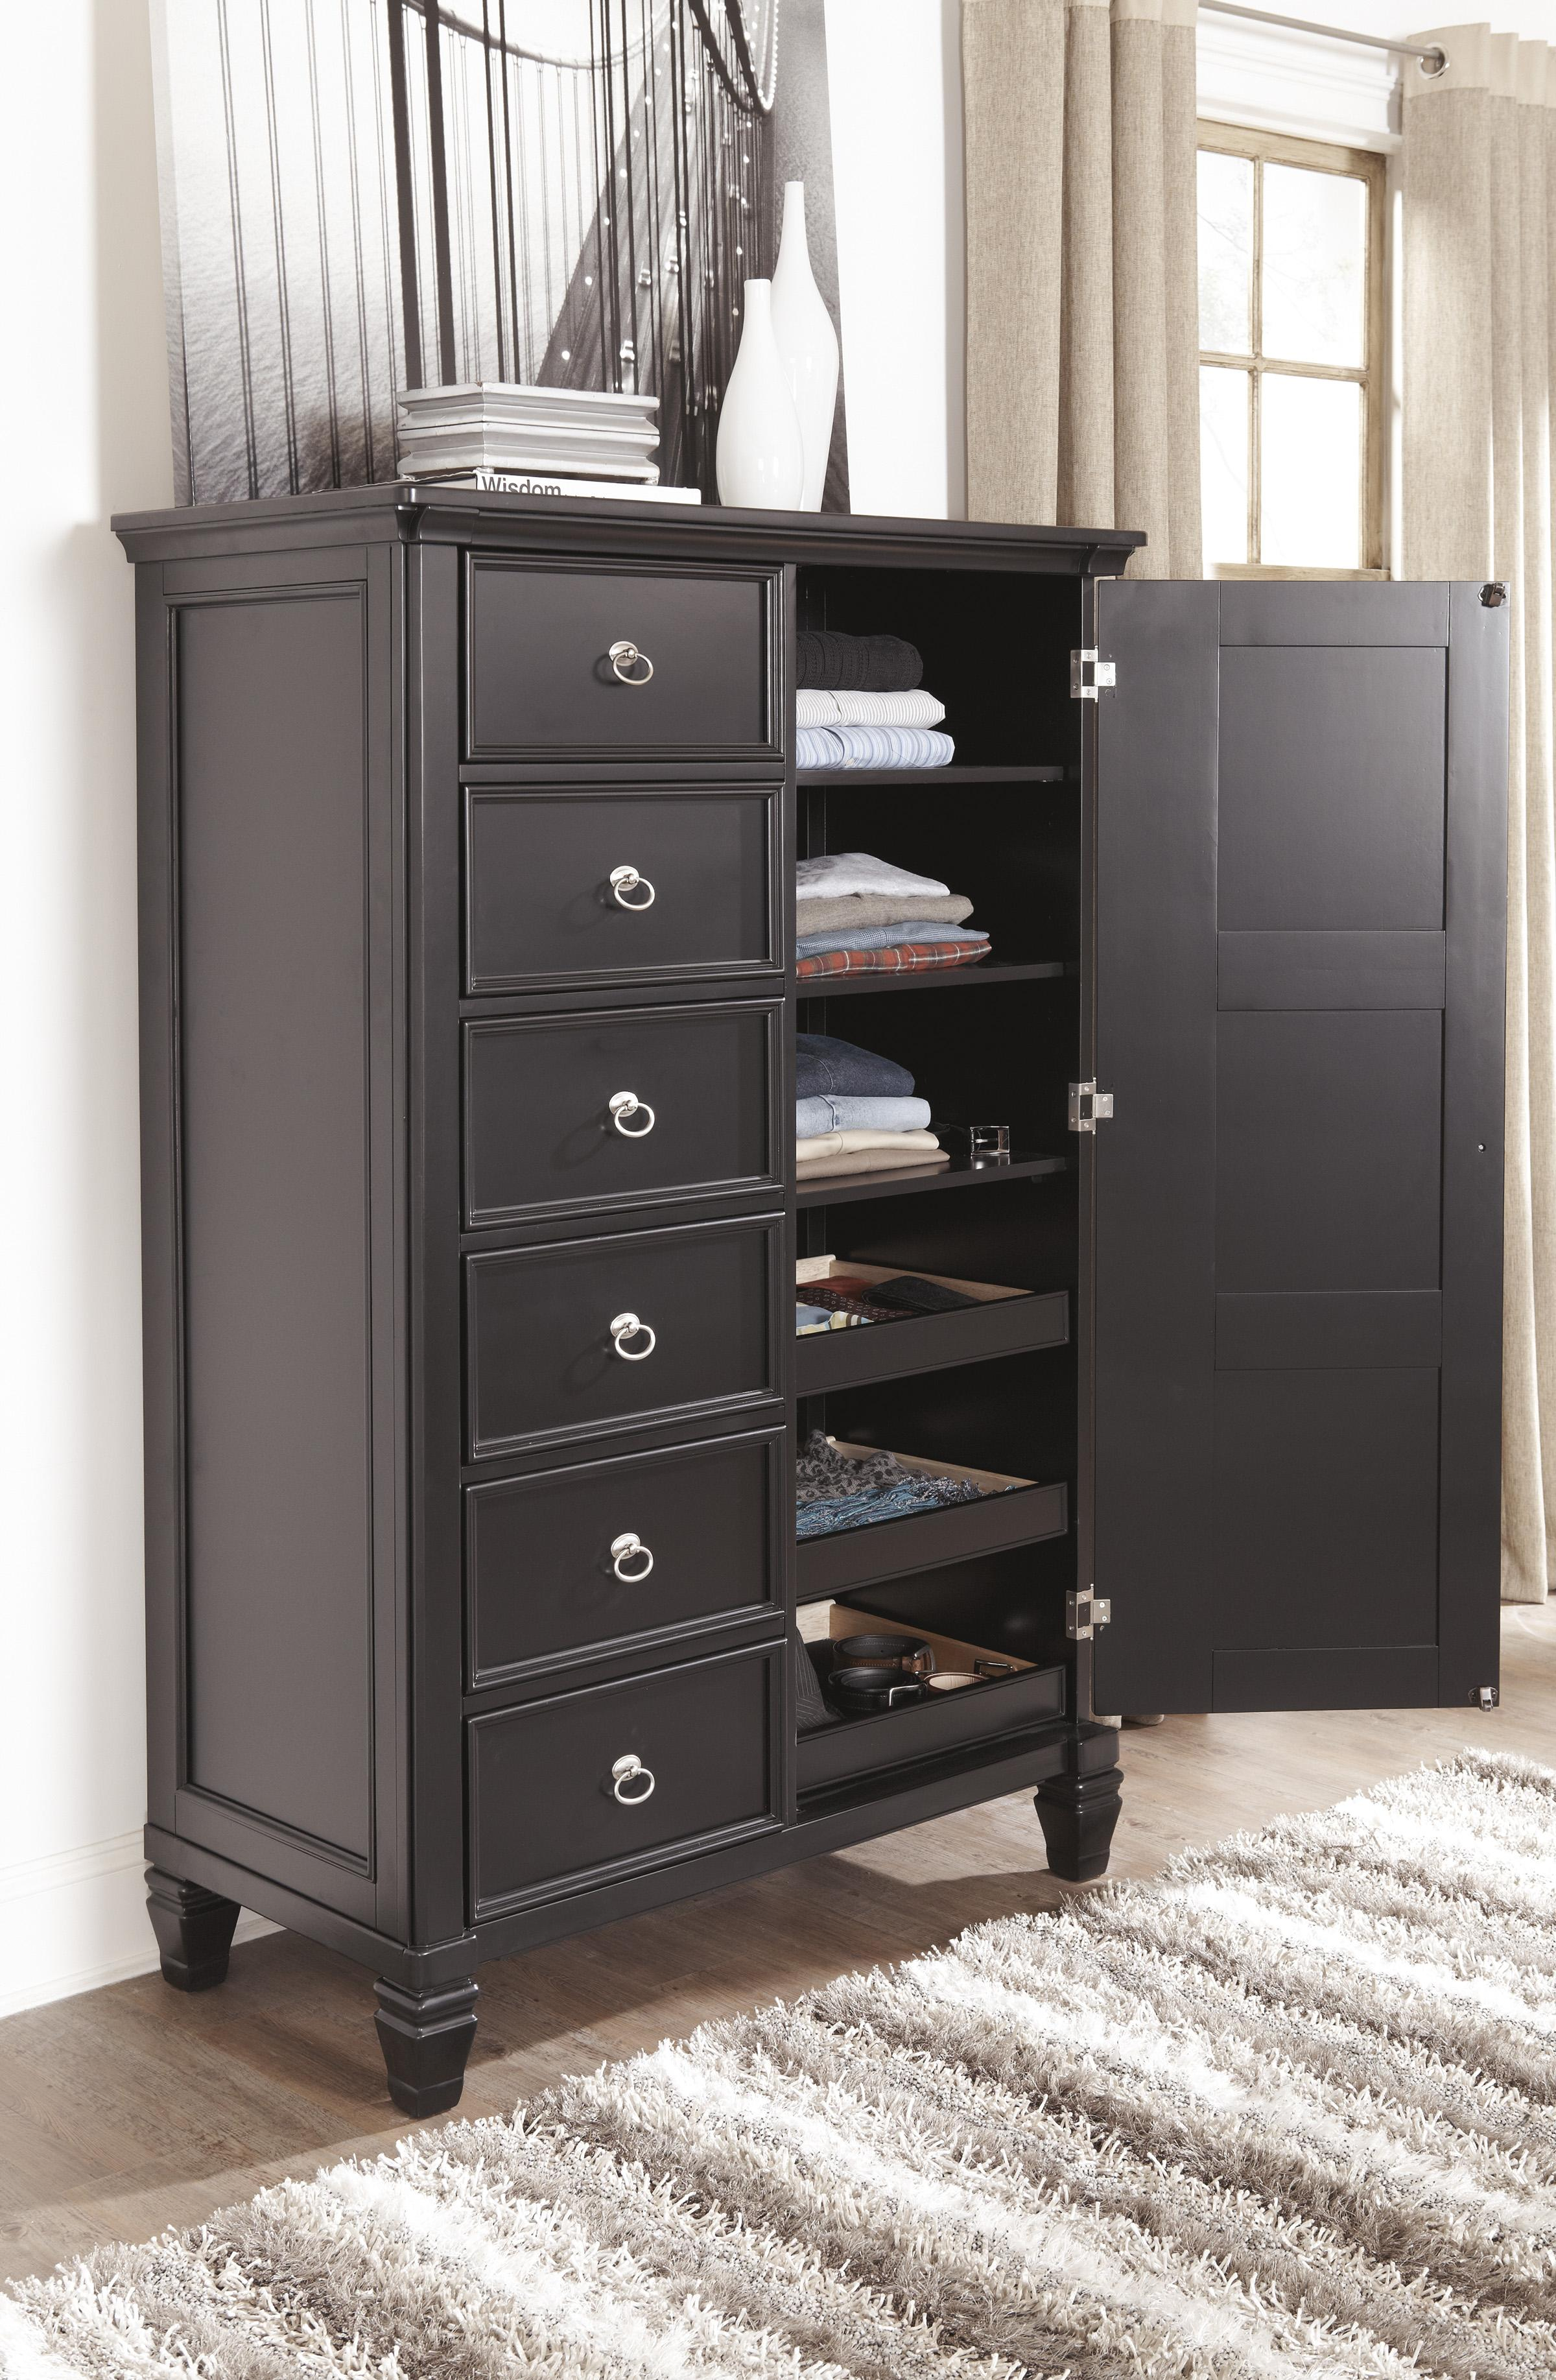 Transitional Door Chest with Shelves and Interior Drawers by